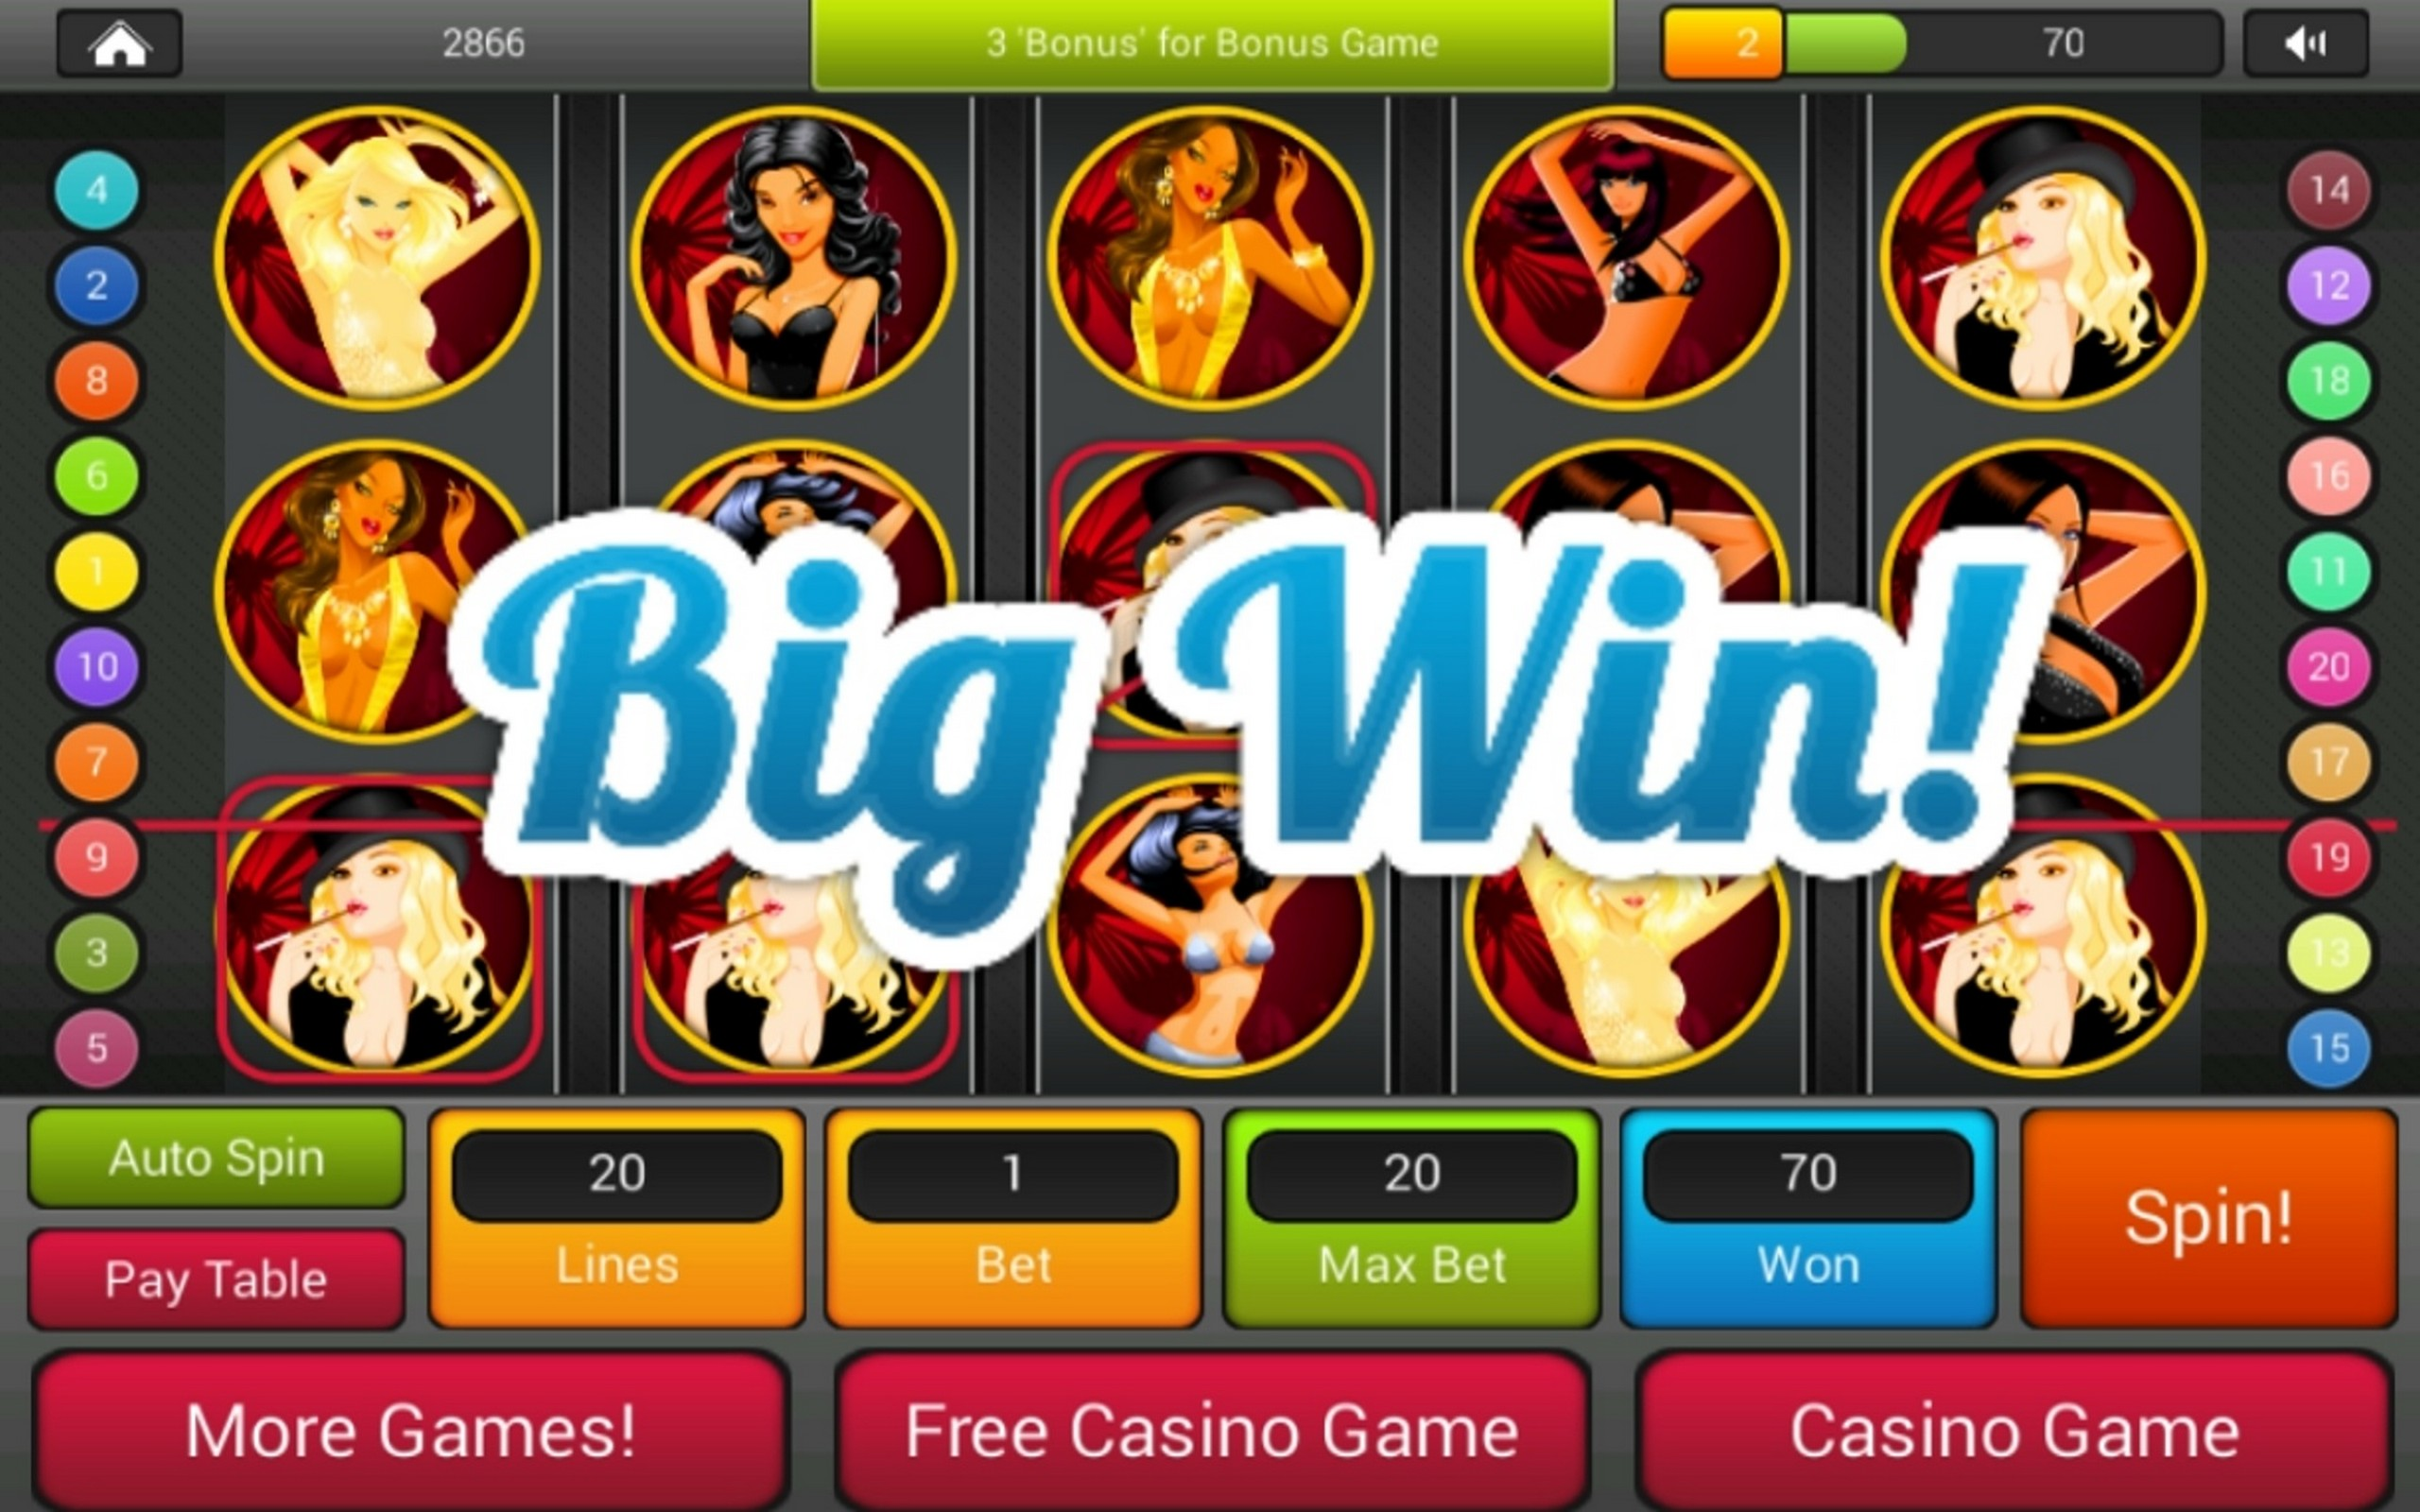 Best Games in the Casino - 10 Games You Should Play